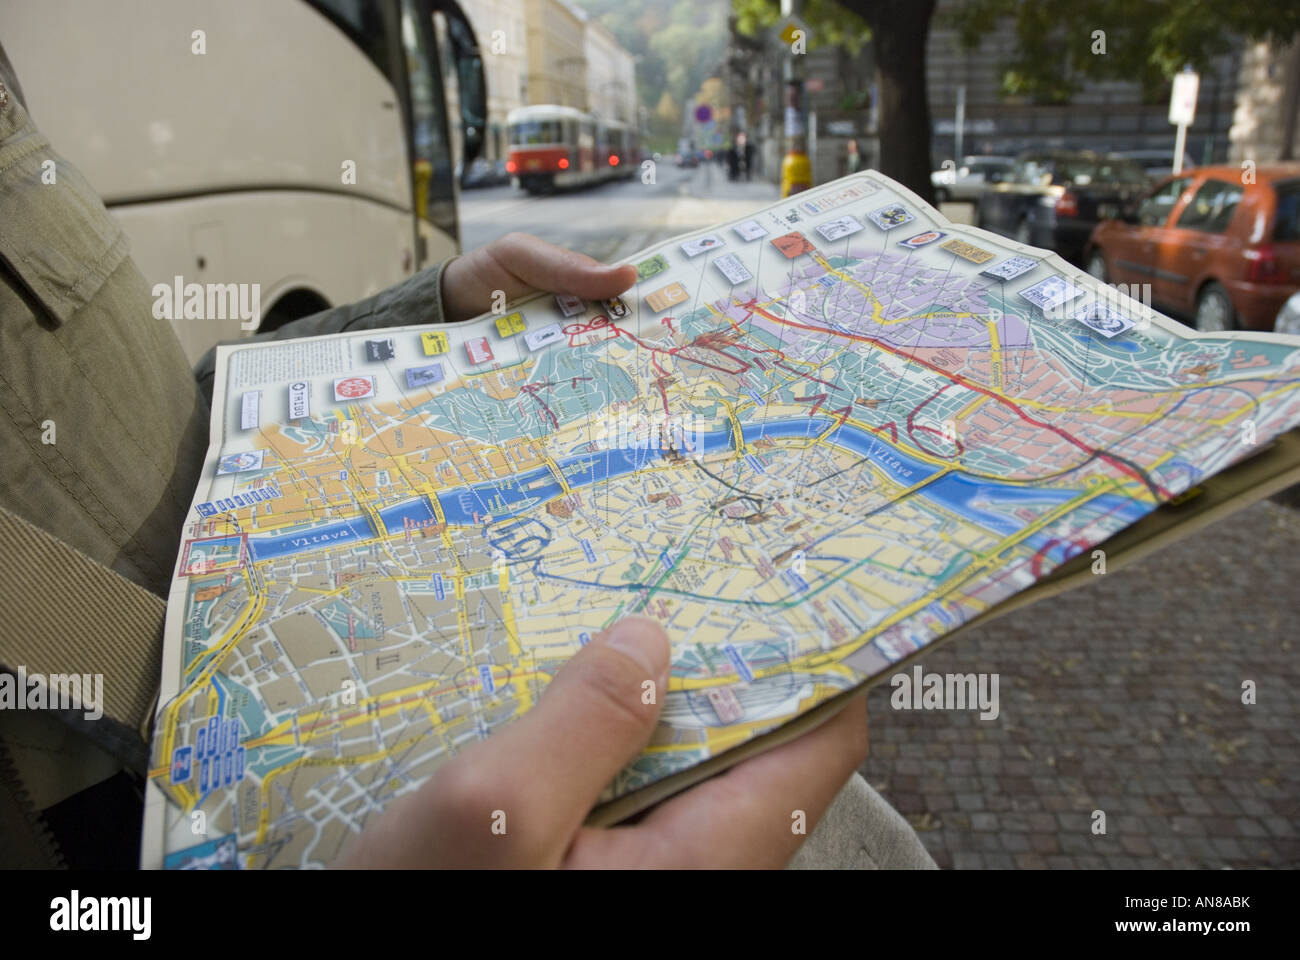 Map legend key stock photos map legend key stock images alamy consulting a city map with marked tram routes in prague czech republic stock image gumiabroncs Choice Image